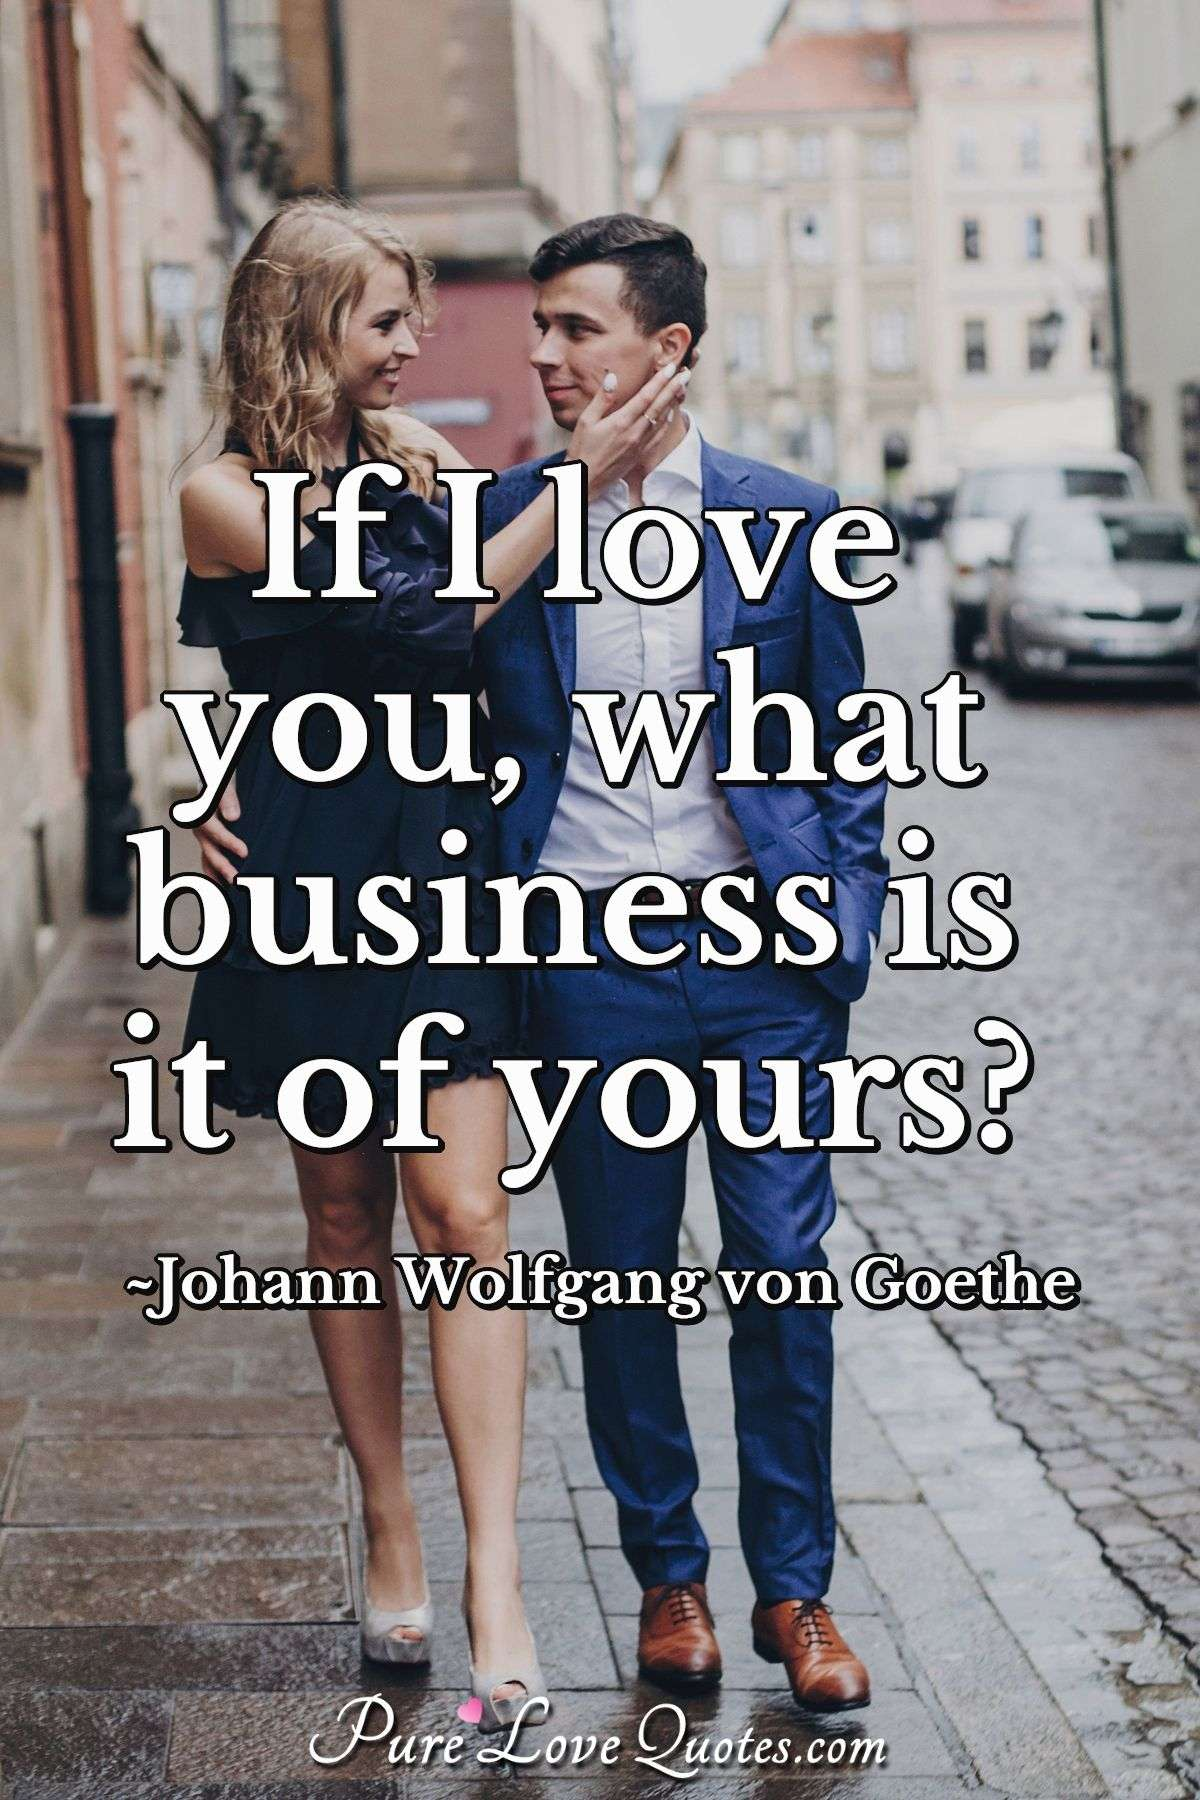 If I love you, what business is it of yours? - Johann Wolfgang von Goethe